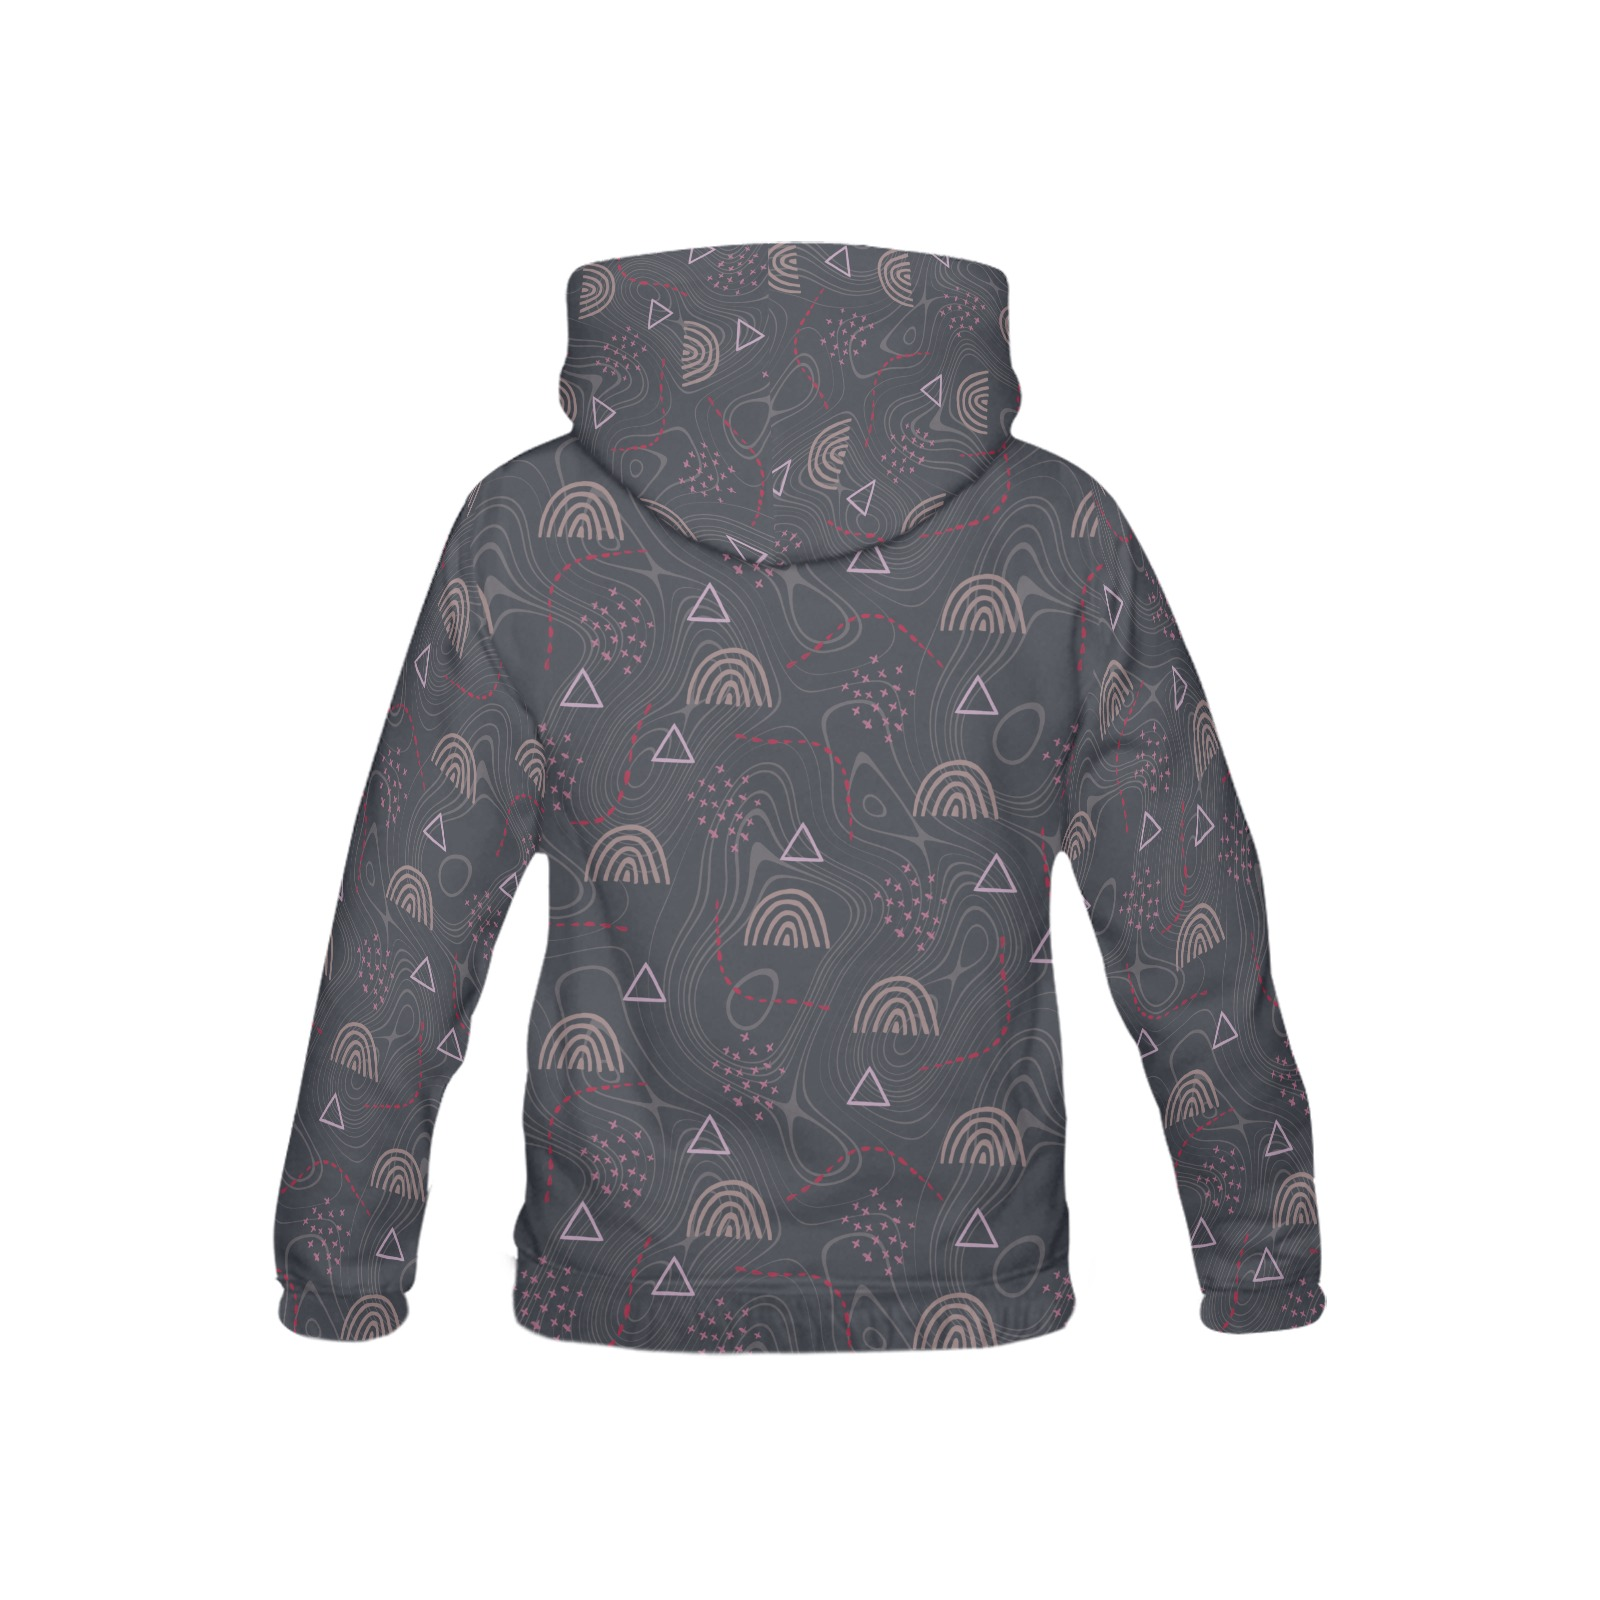 Rainbow, doodles All Over Print Hoodie for Kid (USA Size) (Model H13)